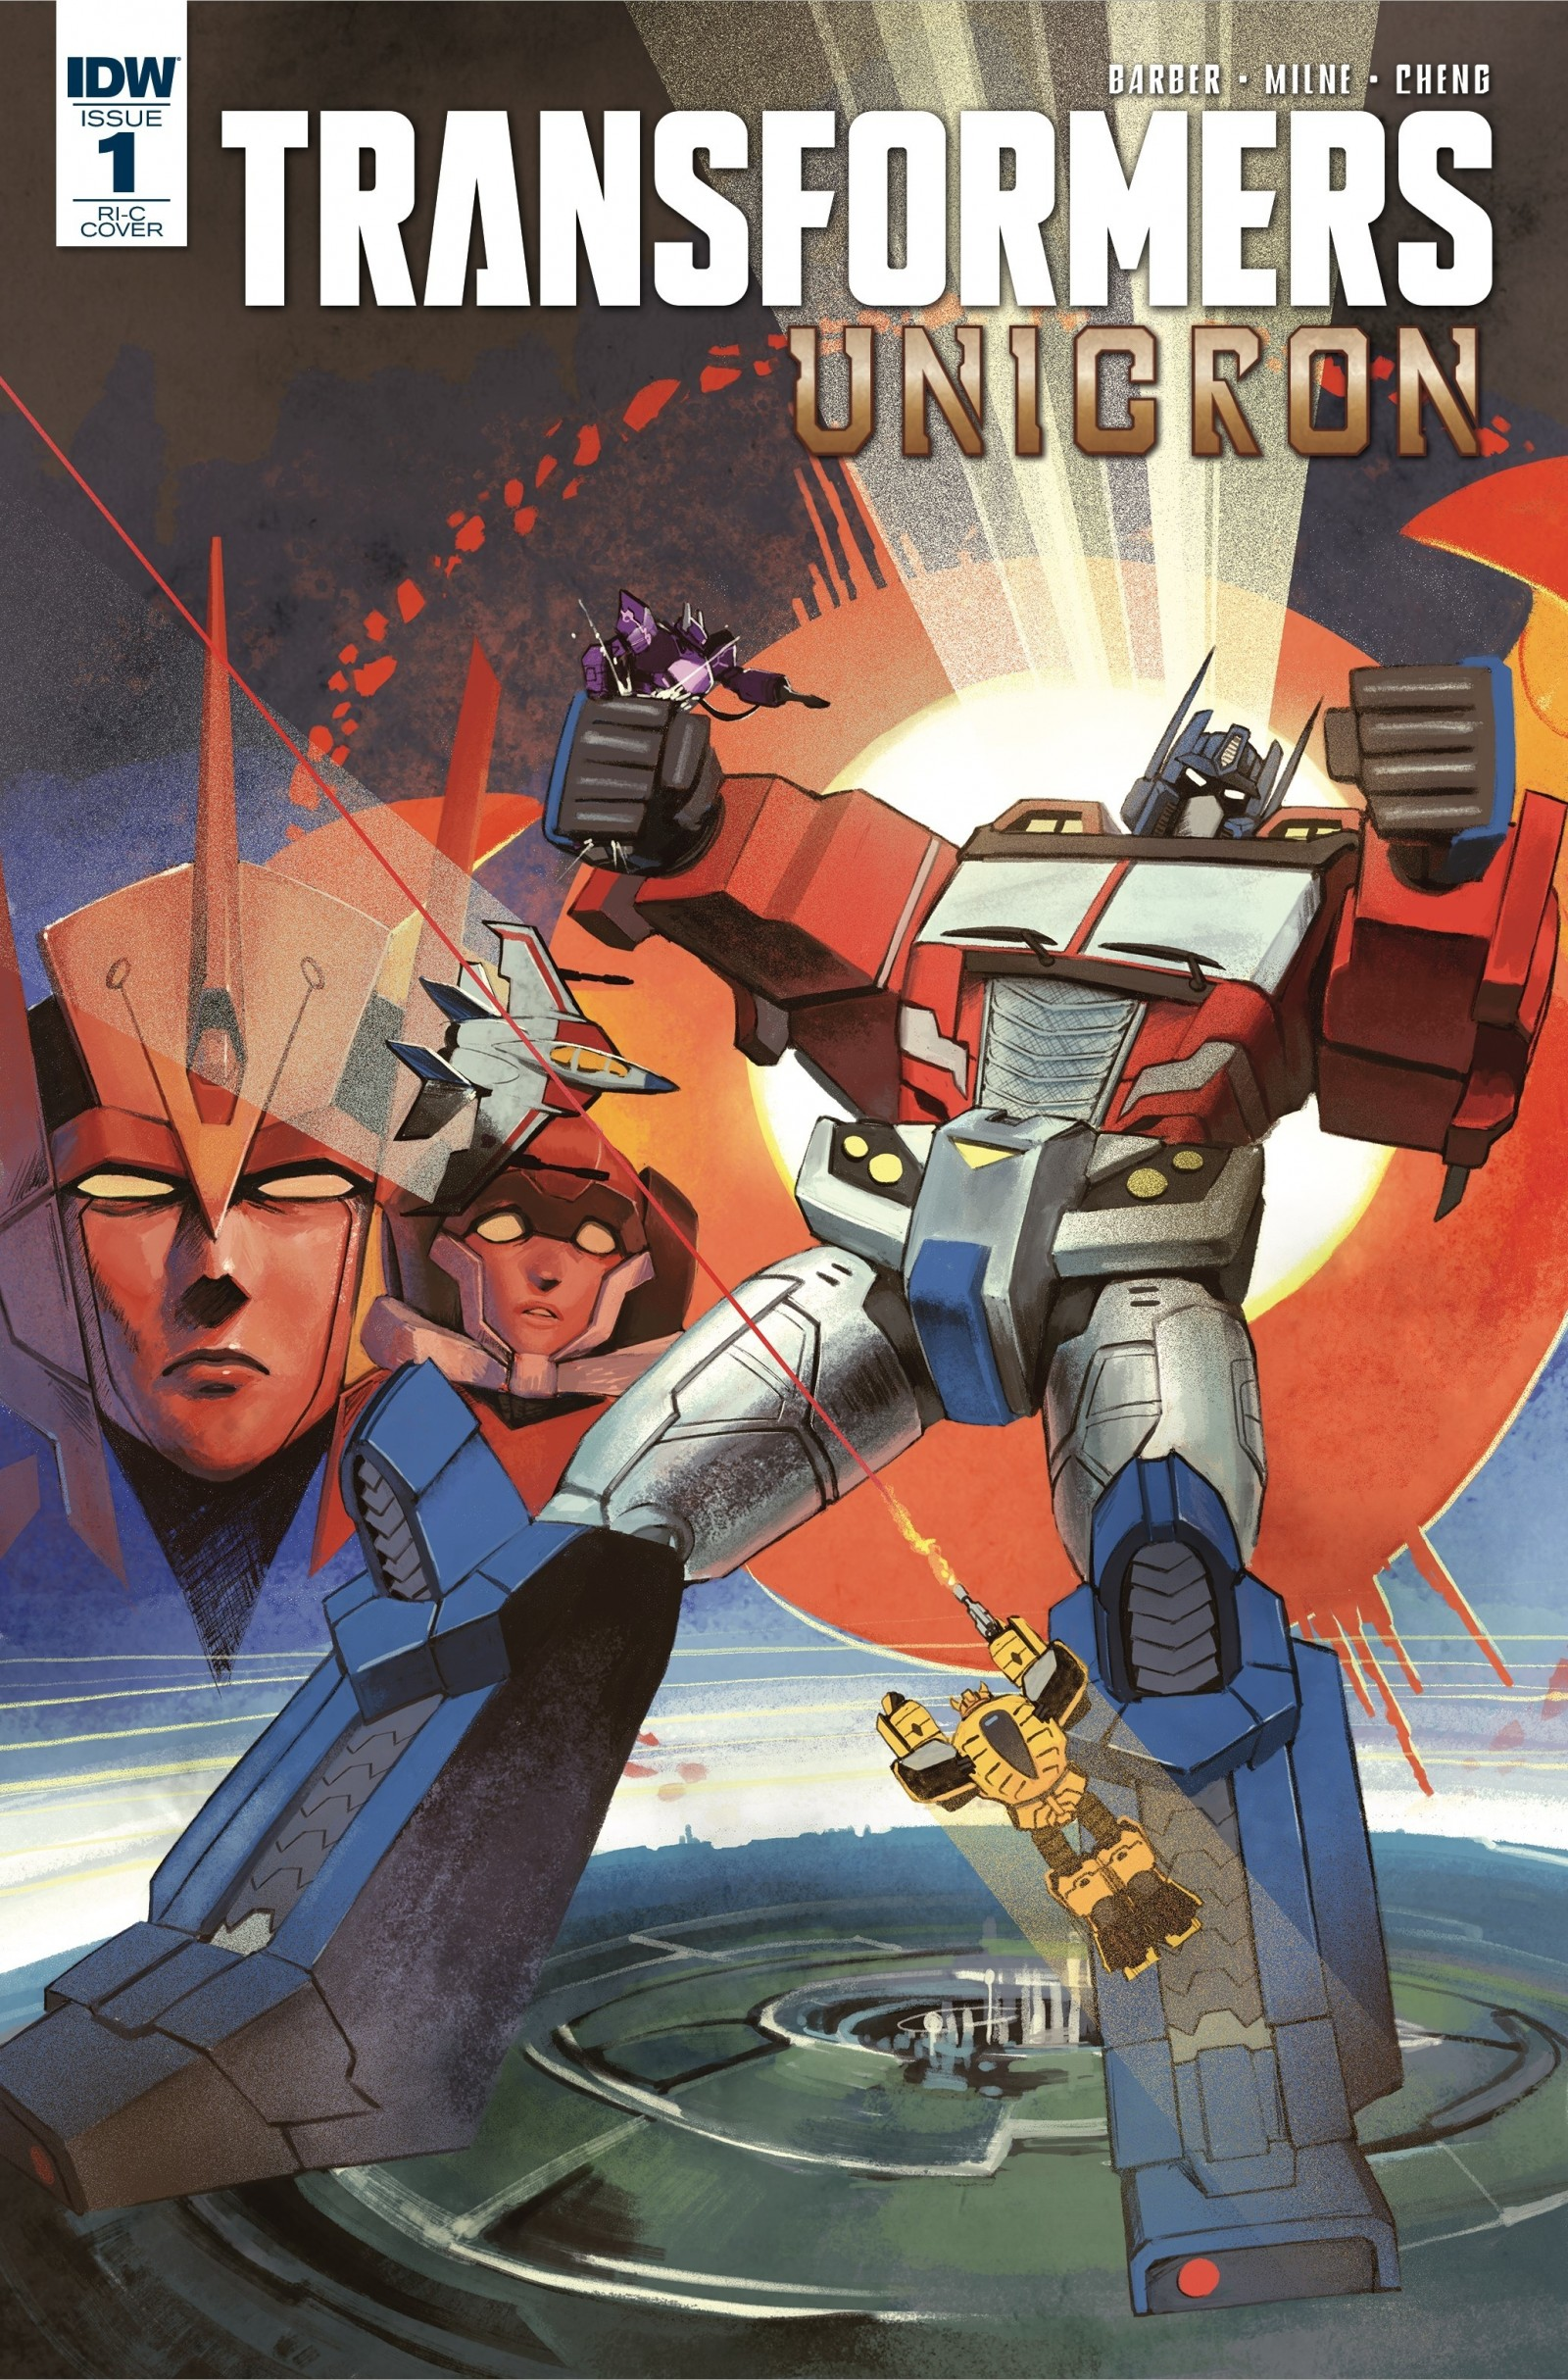 Transformers News: IDW Transformers Unicron Issue #1 Sara Pitre-Durocher Cover Revealed